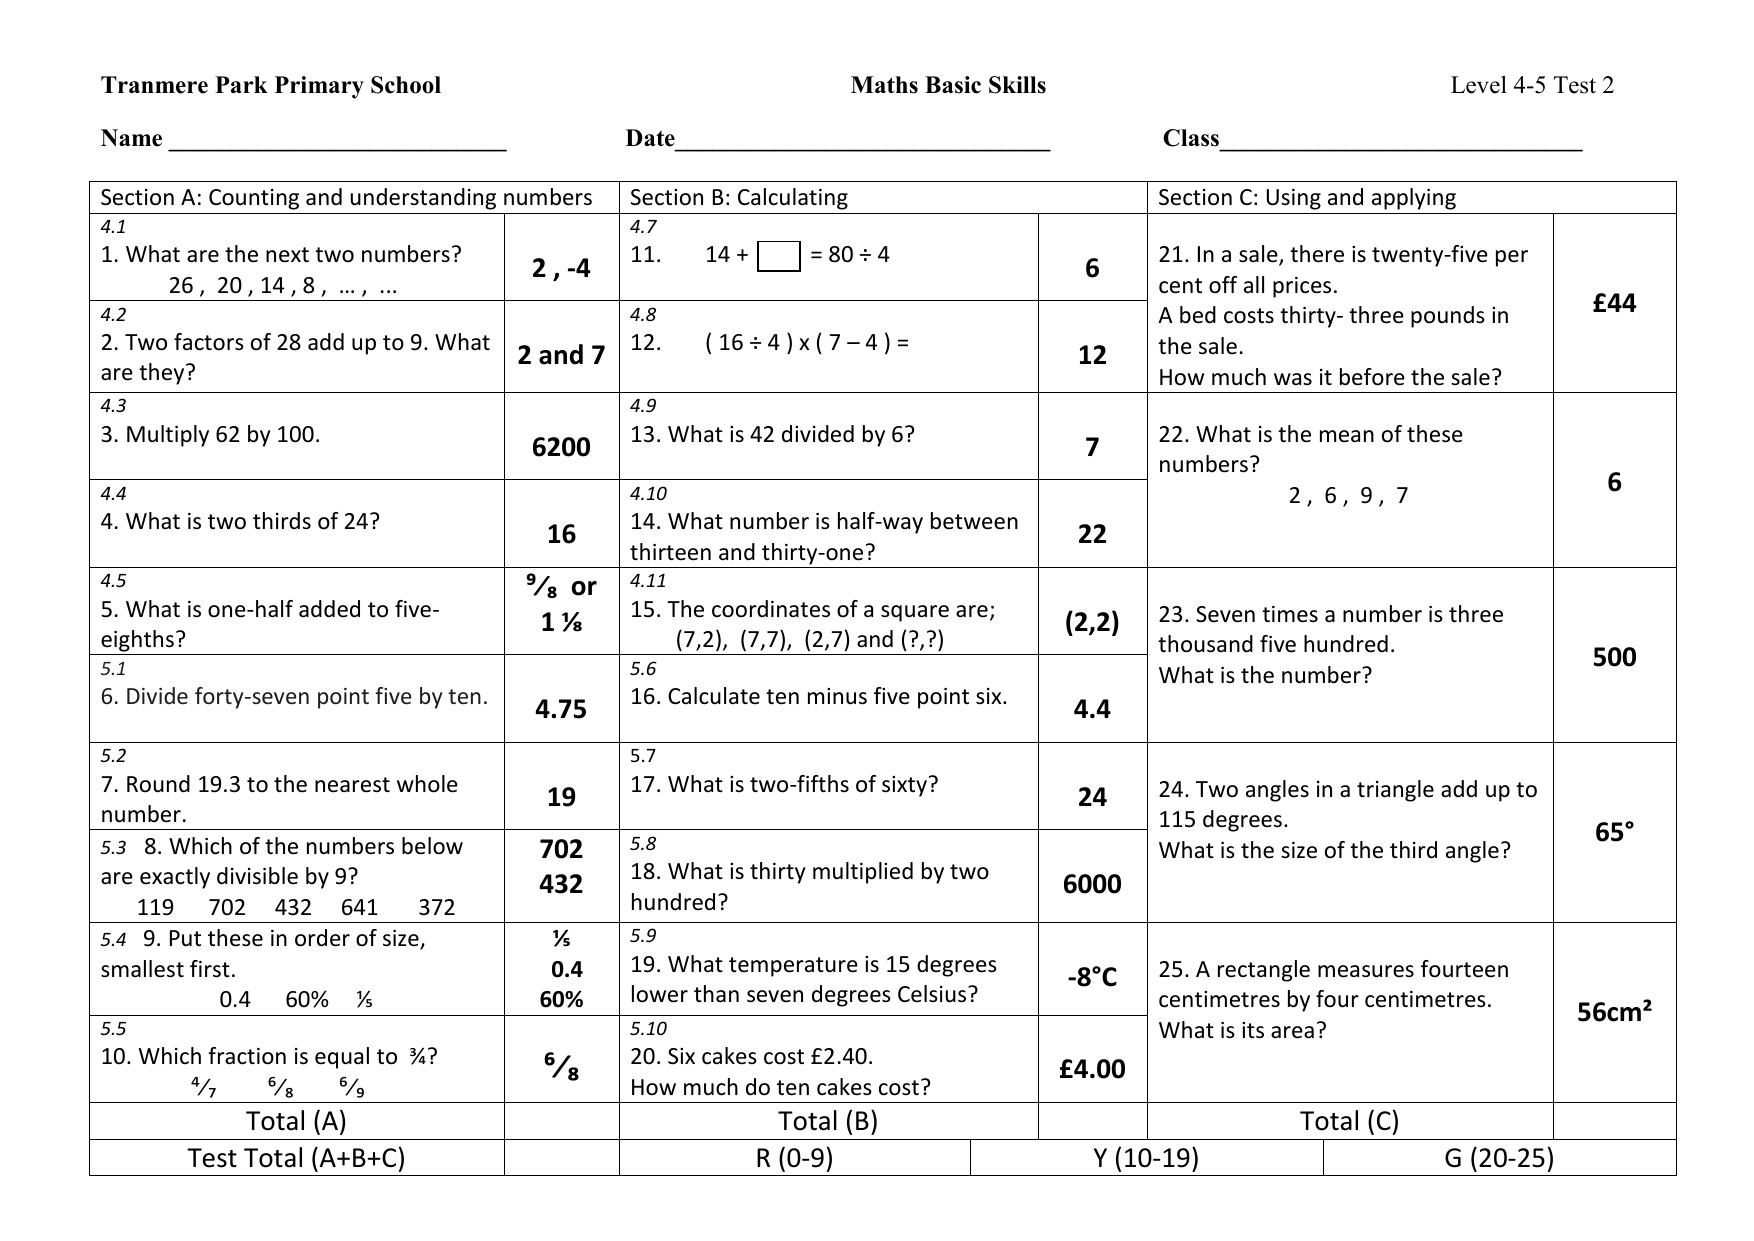 Level 4-5 Test 2 answers - Tranmere Park Primary School